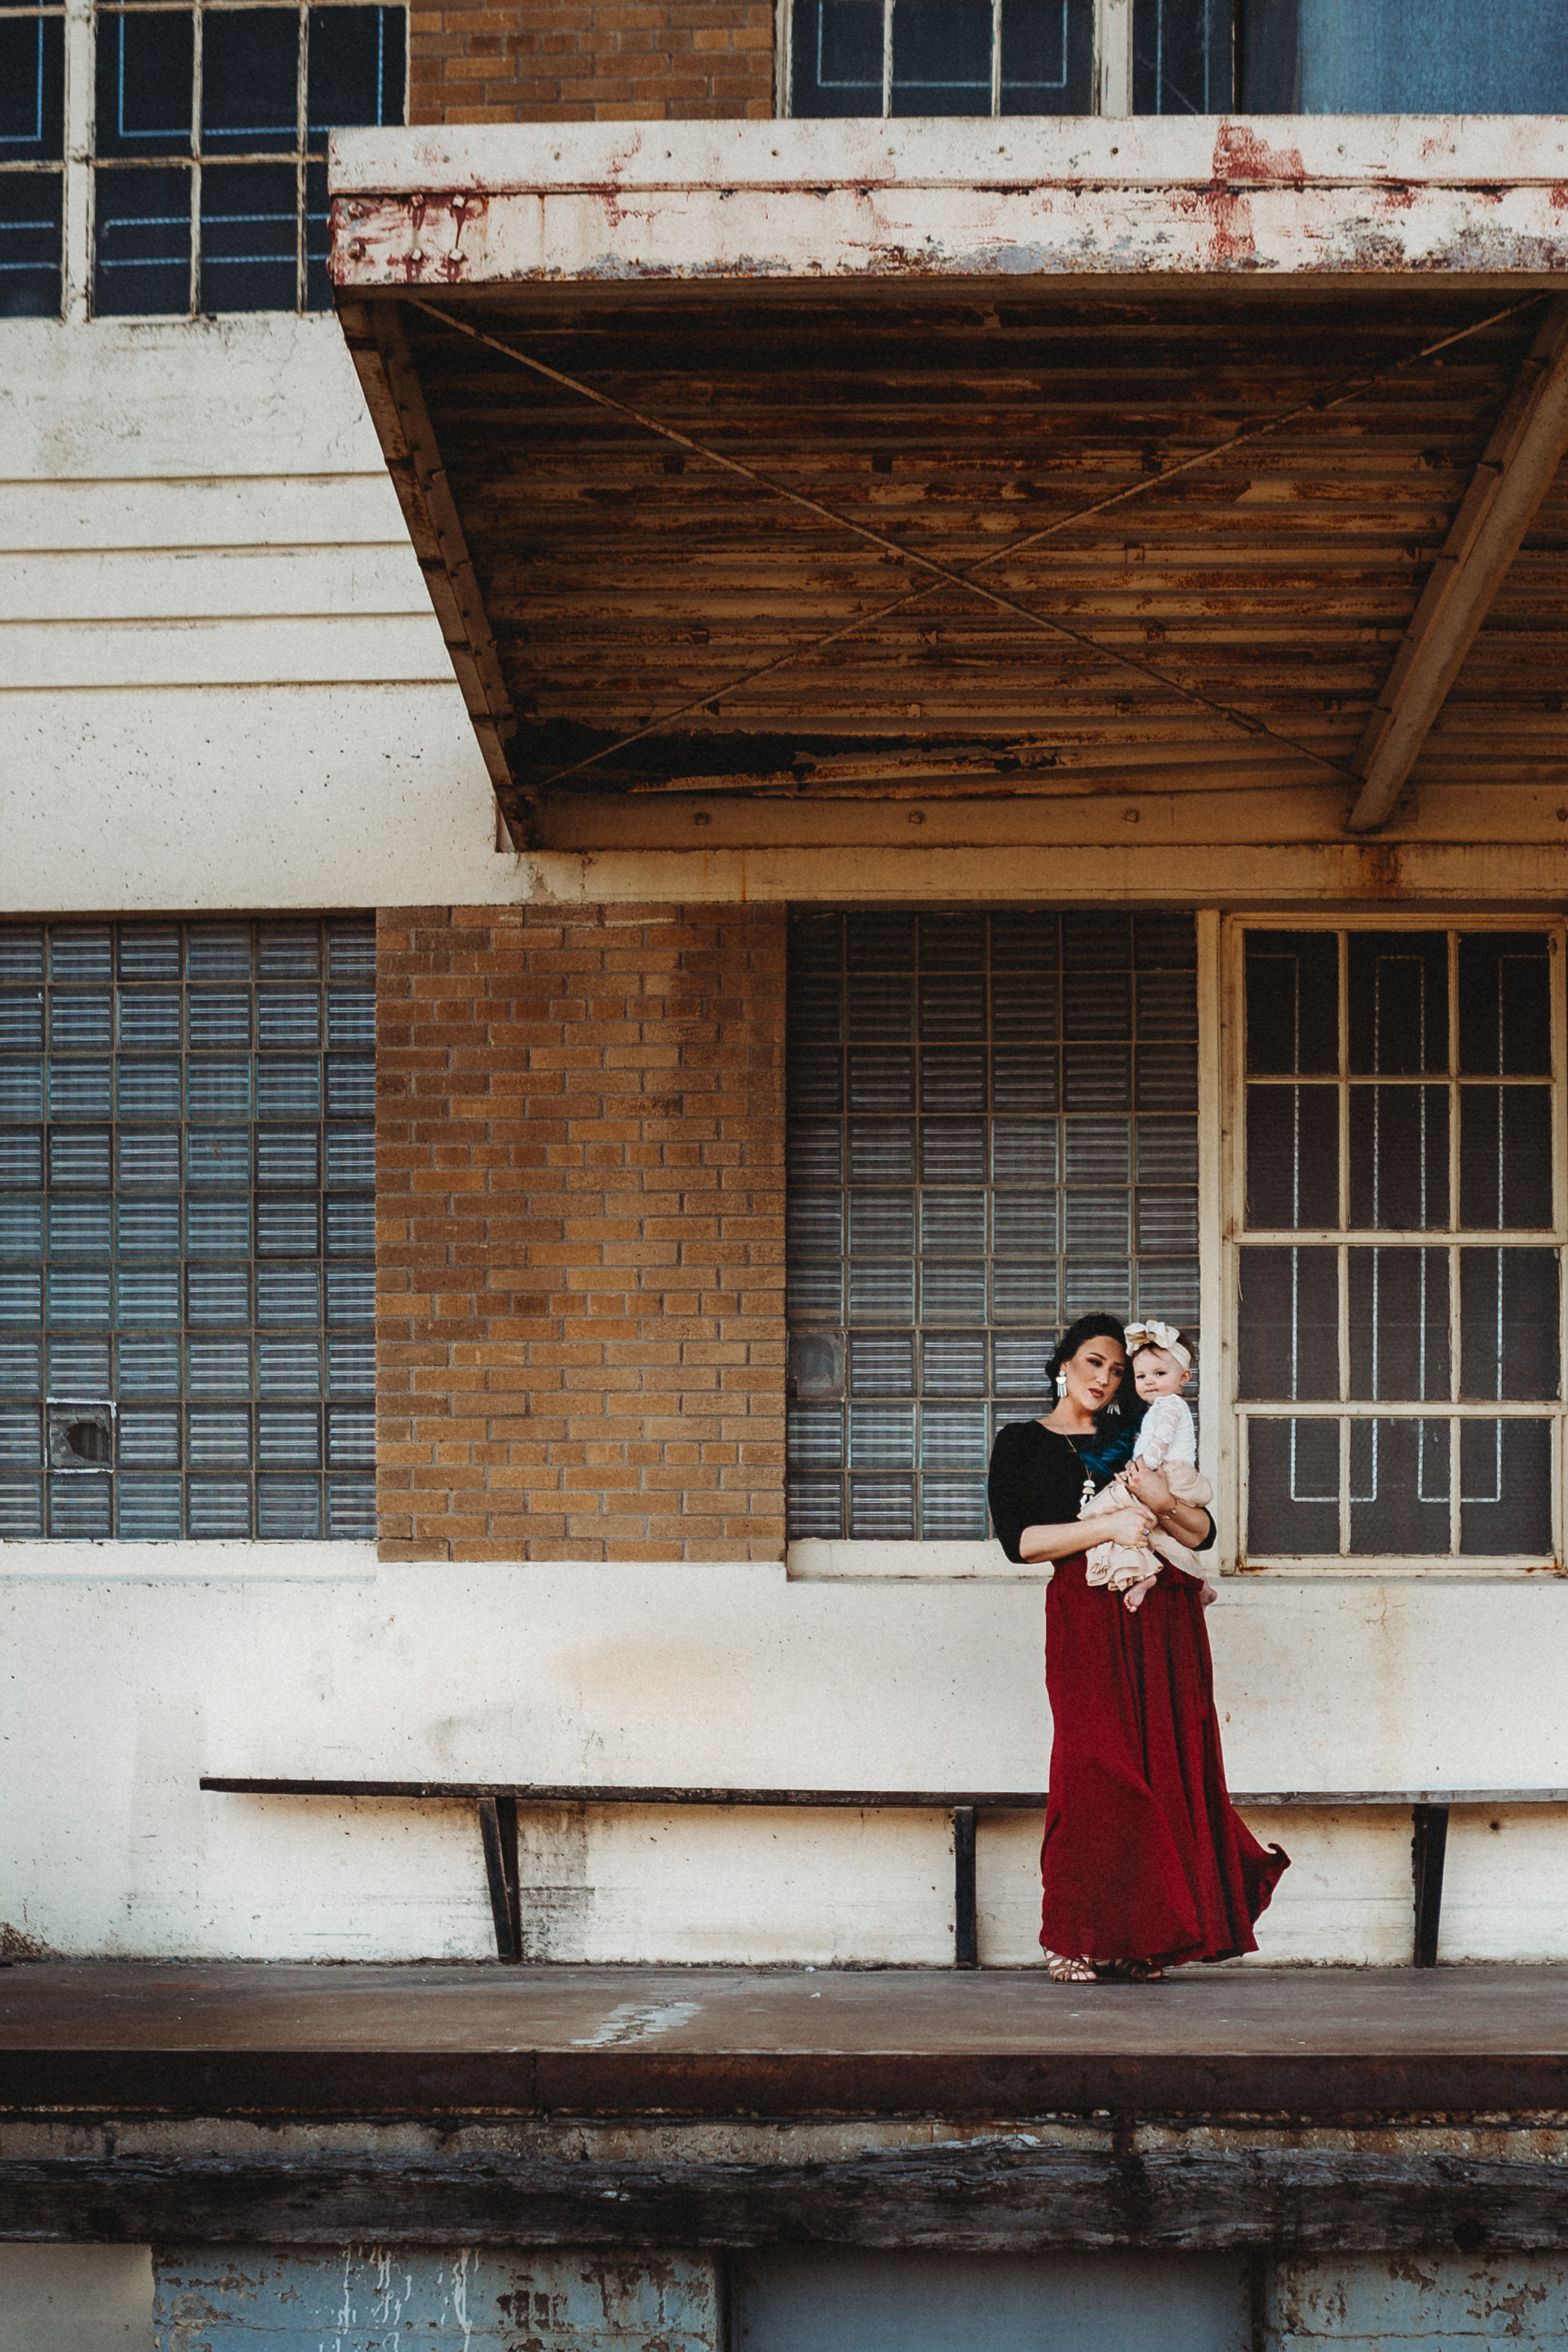 Mom and baby together with a bond that is unbreakable, ruby red dress to stand out in front of neutral downtown #rubyred #familyphotos #downtown #hairstyle #personality #amarillotexas #familyphotographer #lifestylephotos #amarillophotographer #locationchoice #texasfamilyphotos #familyofthree